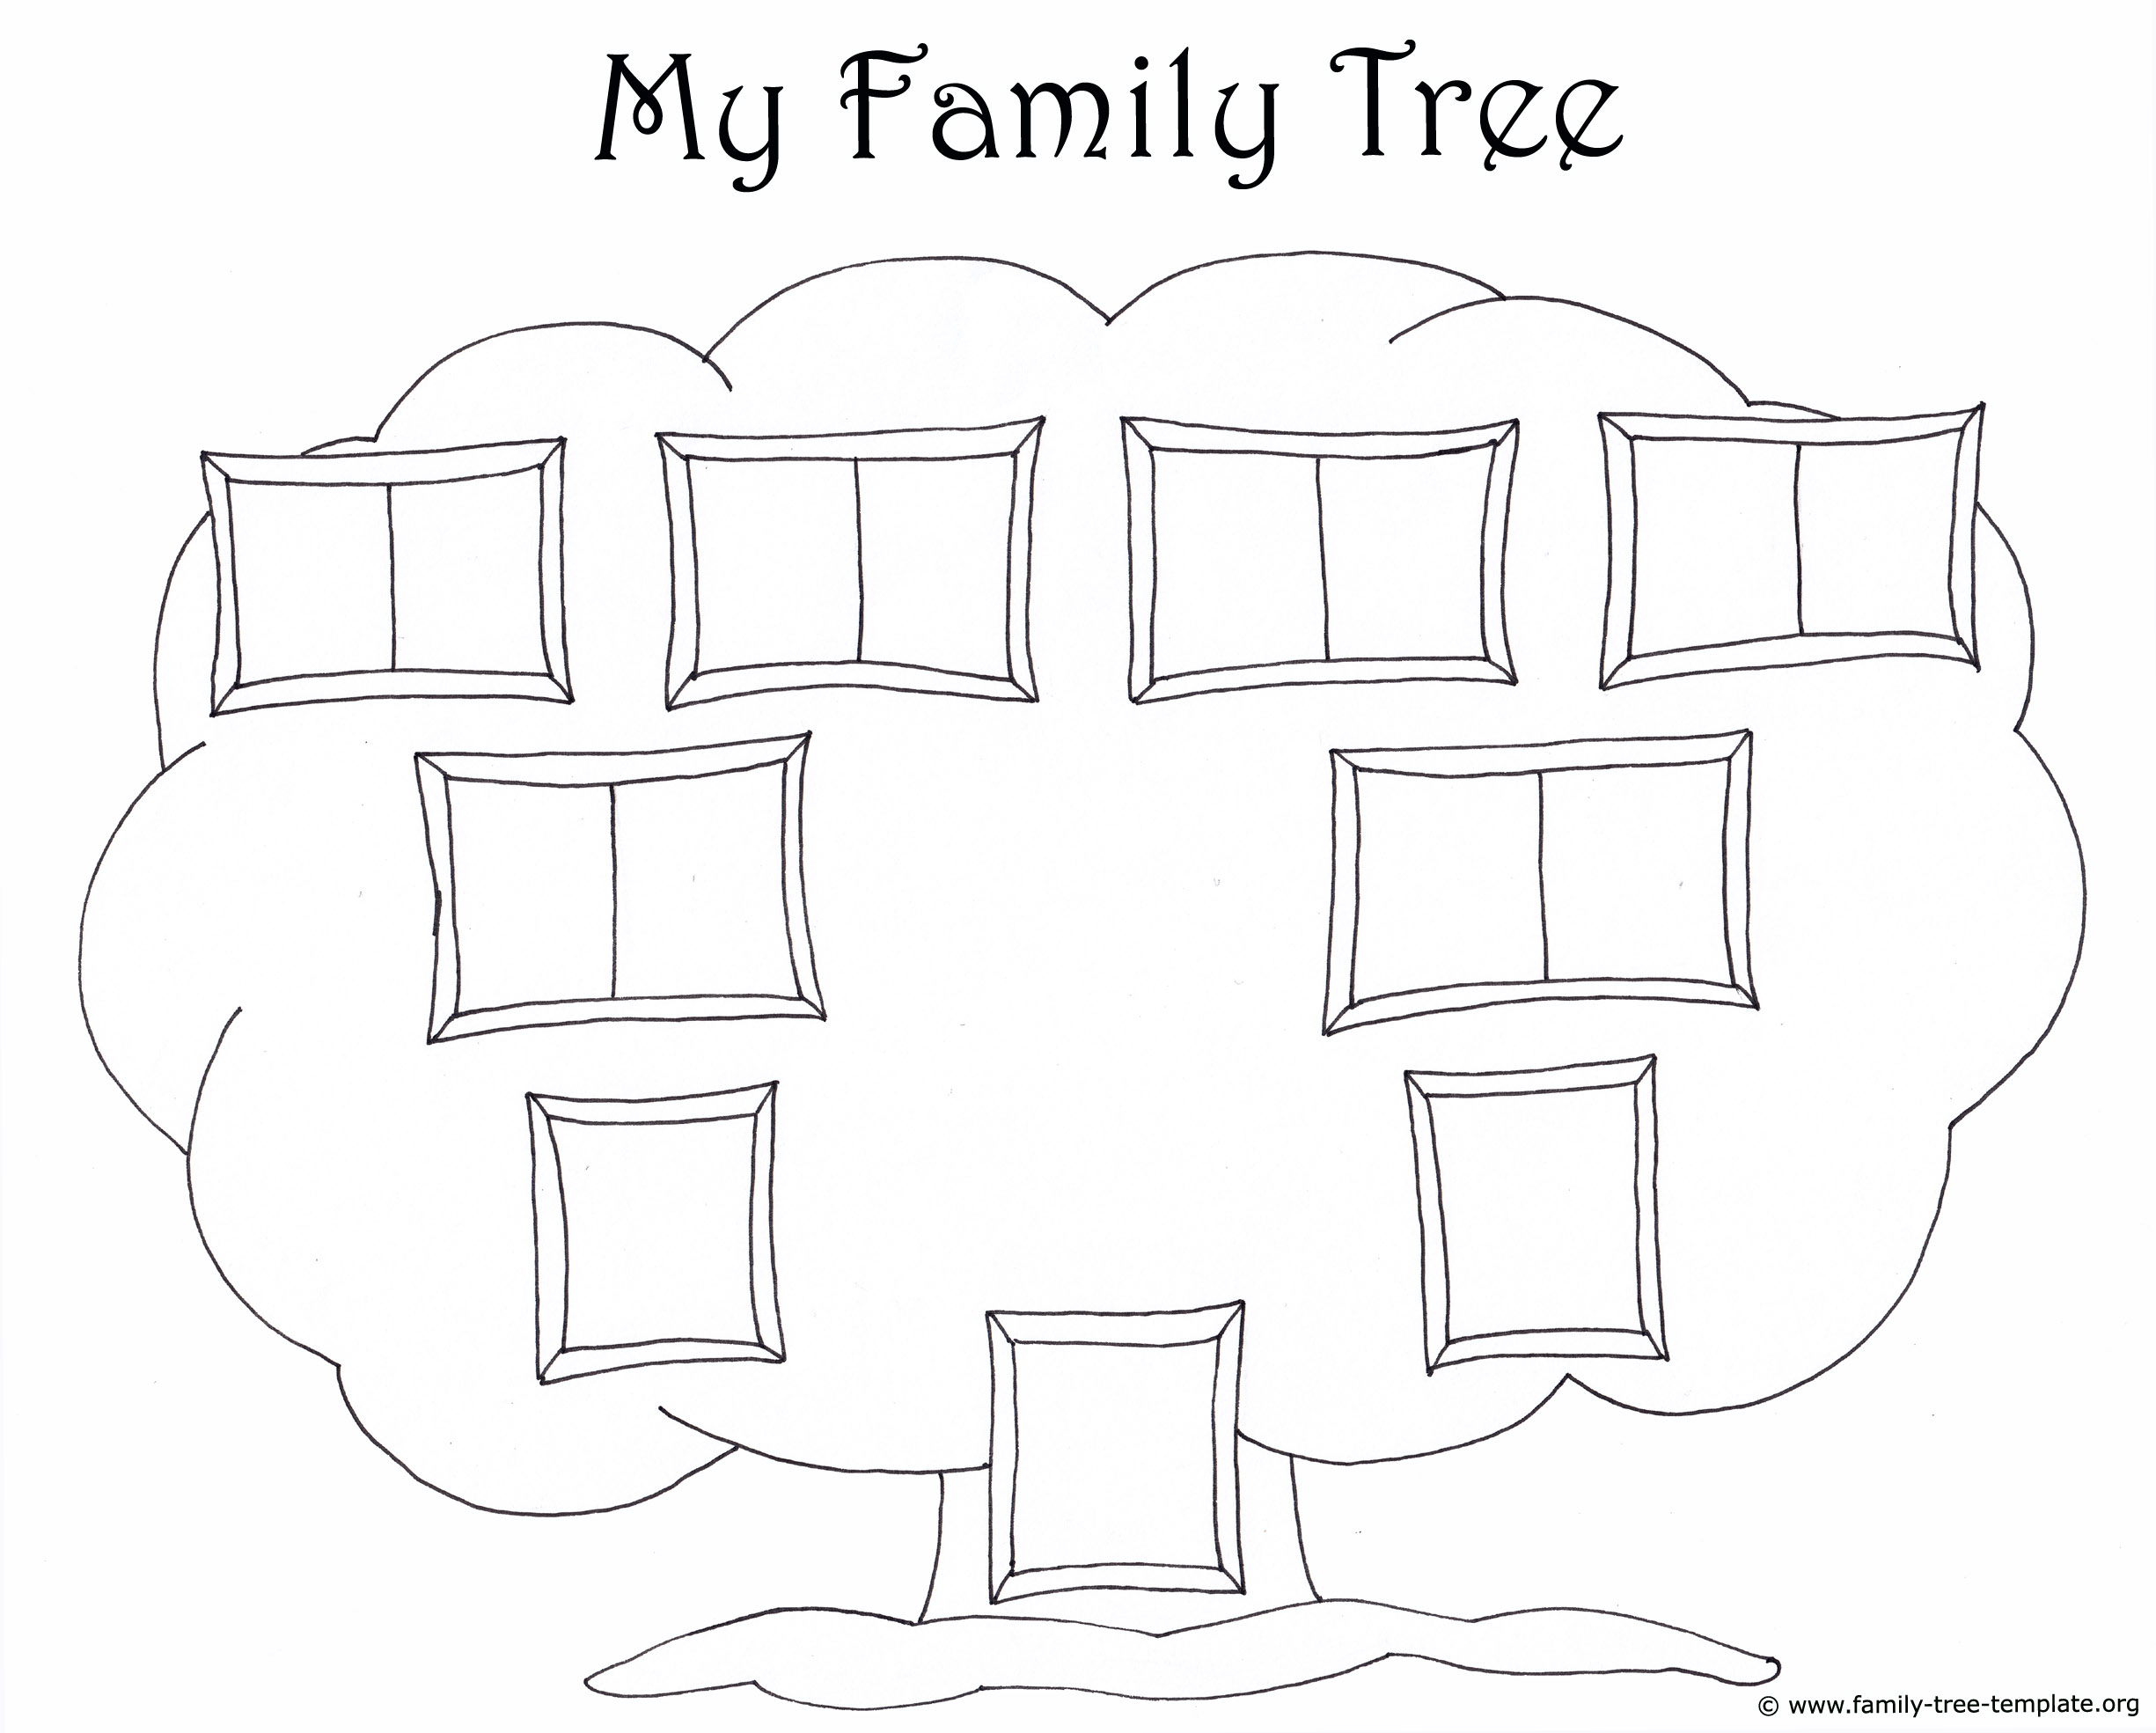 Family Tree Template For Kids: Printable Genealogy Charts - Free Printable Family Tree Template 4 Generations